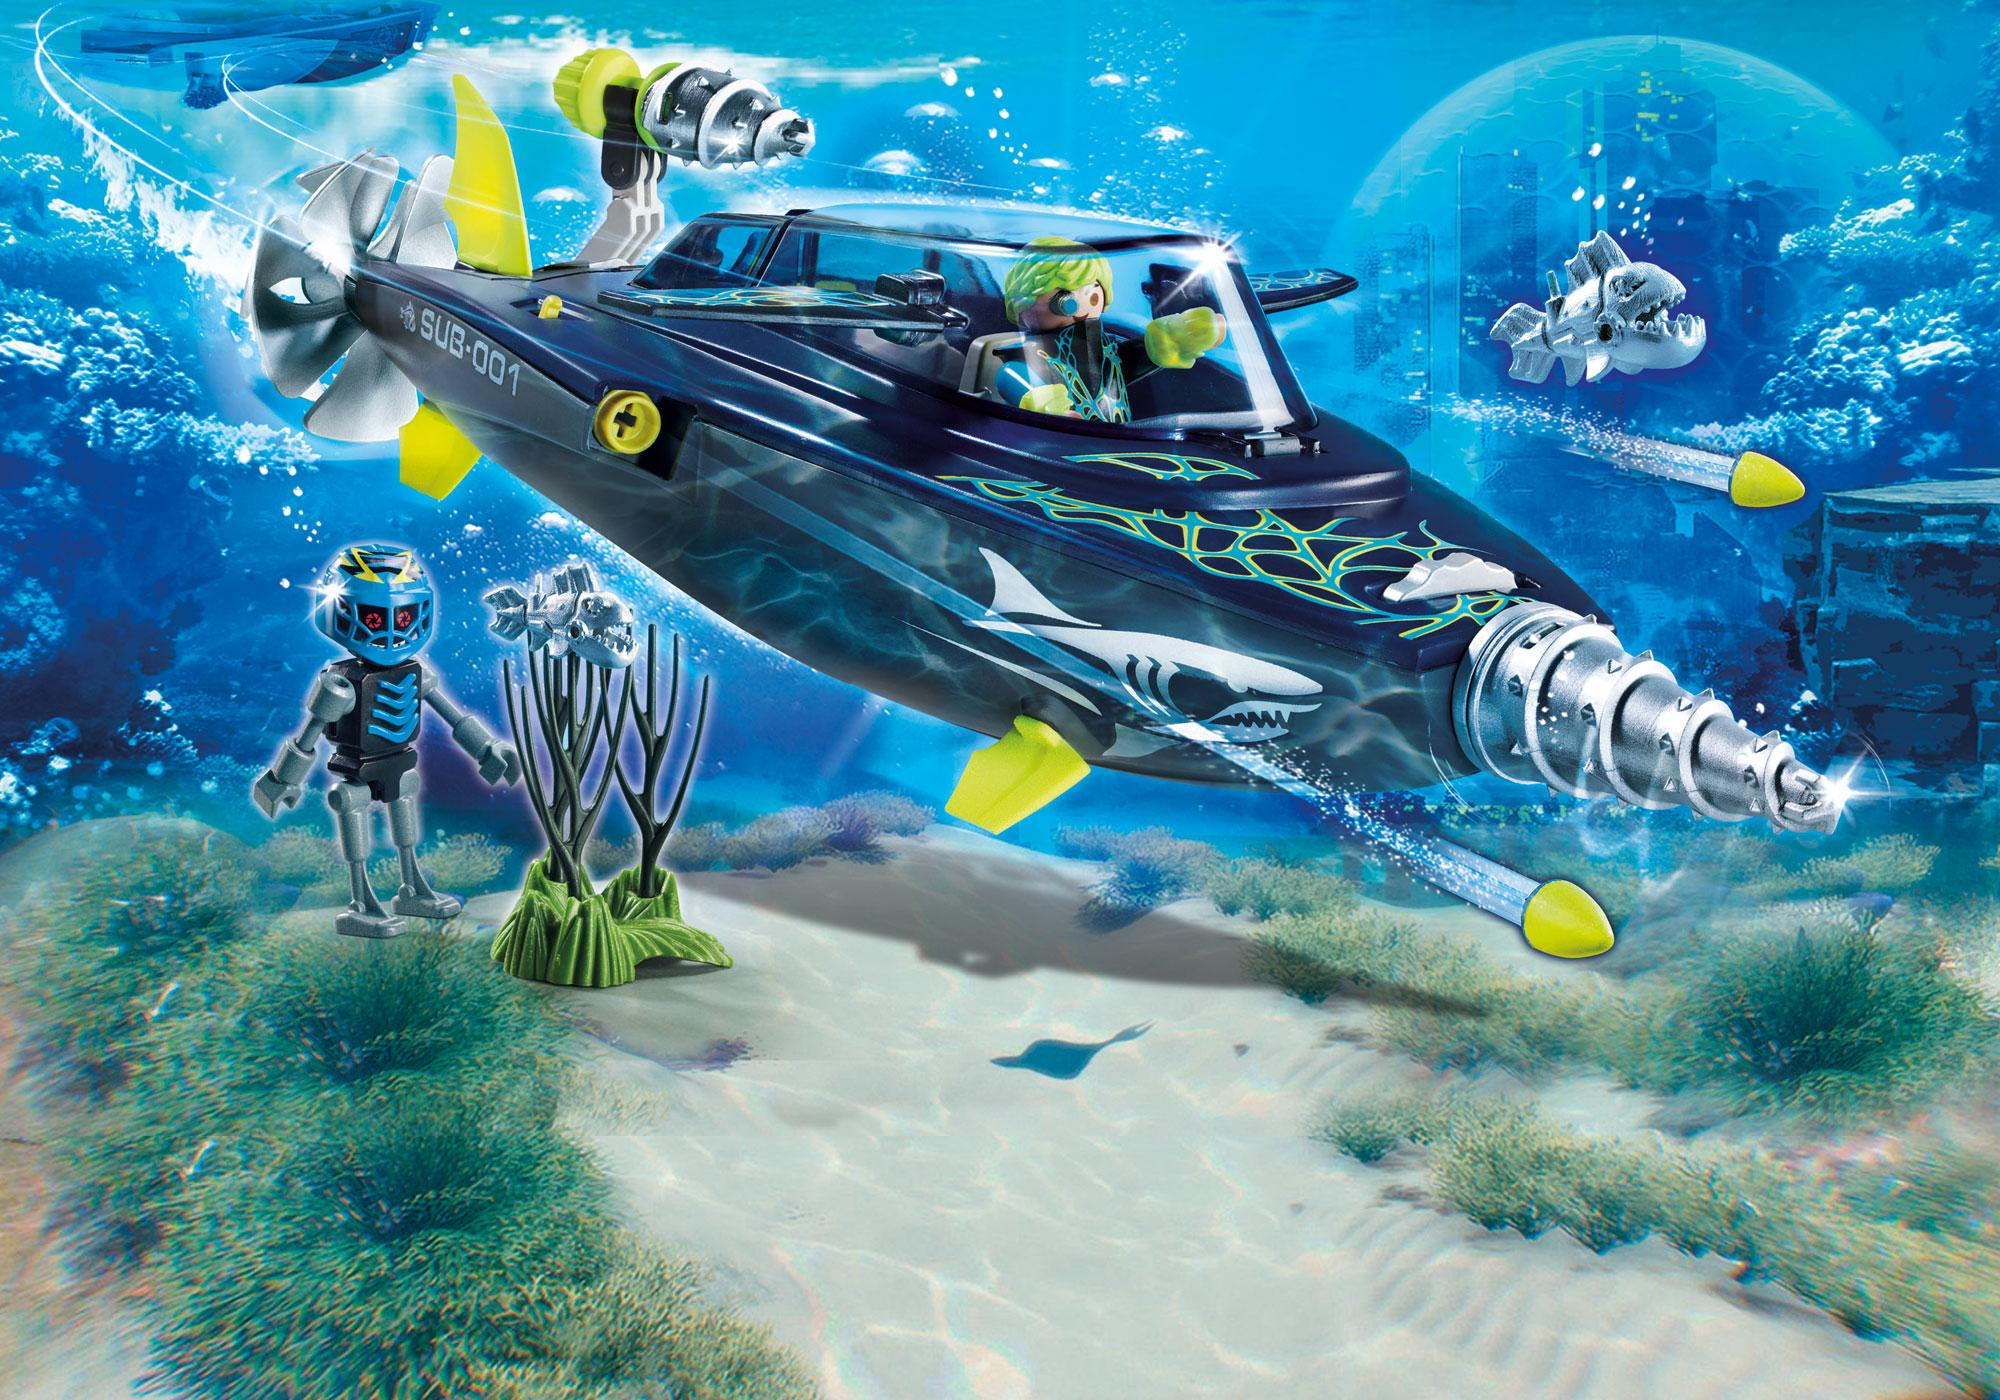 http://media.playmobil.com/i/playmobil/70005_product_detail/TEAM S.H.A.R.K. Drill Destroyer